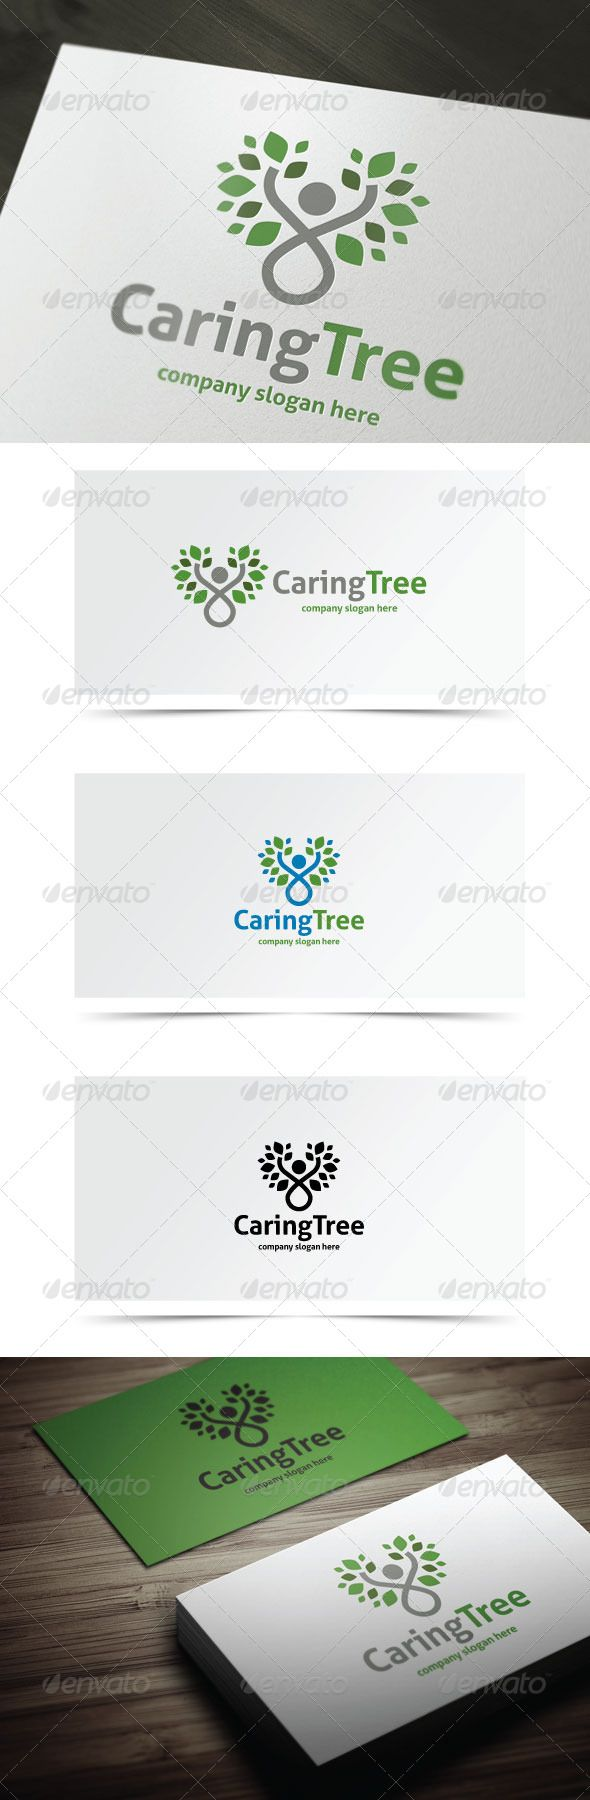 Caring Tree - Nature Logo Templates